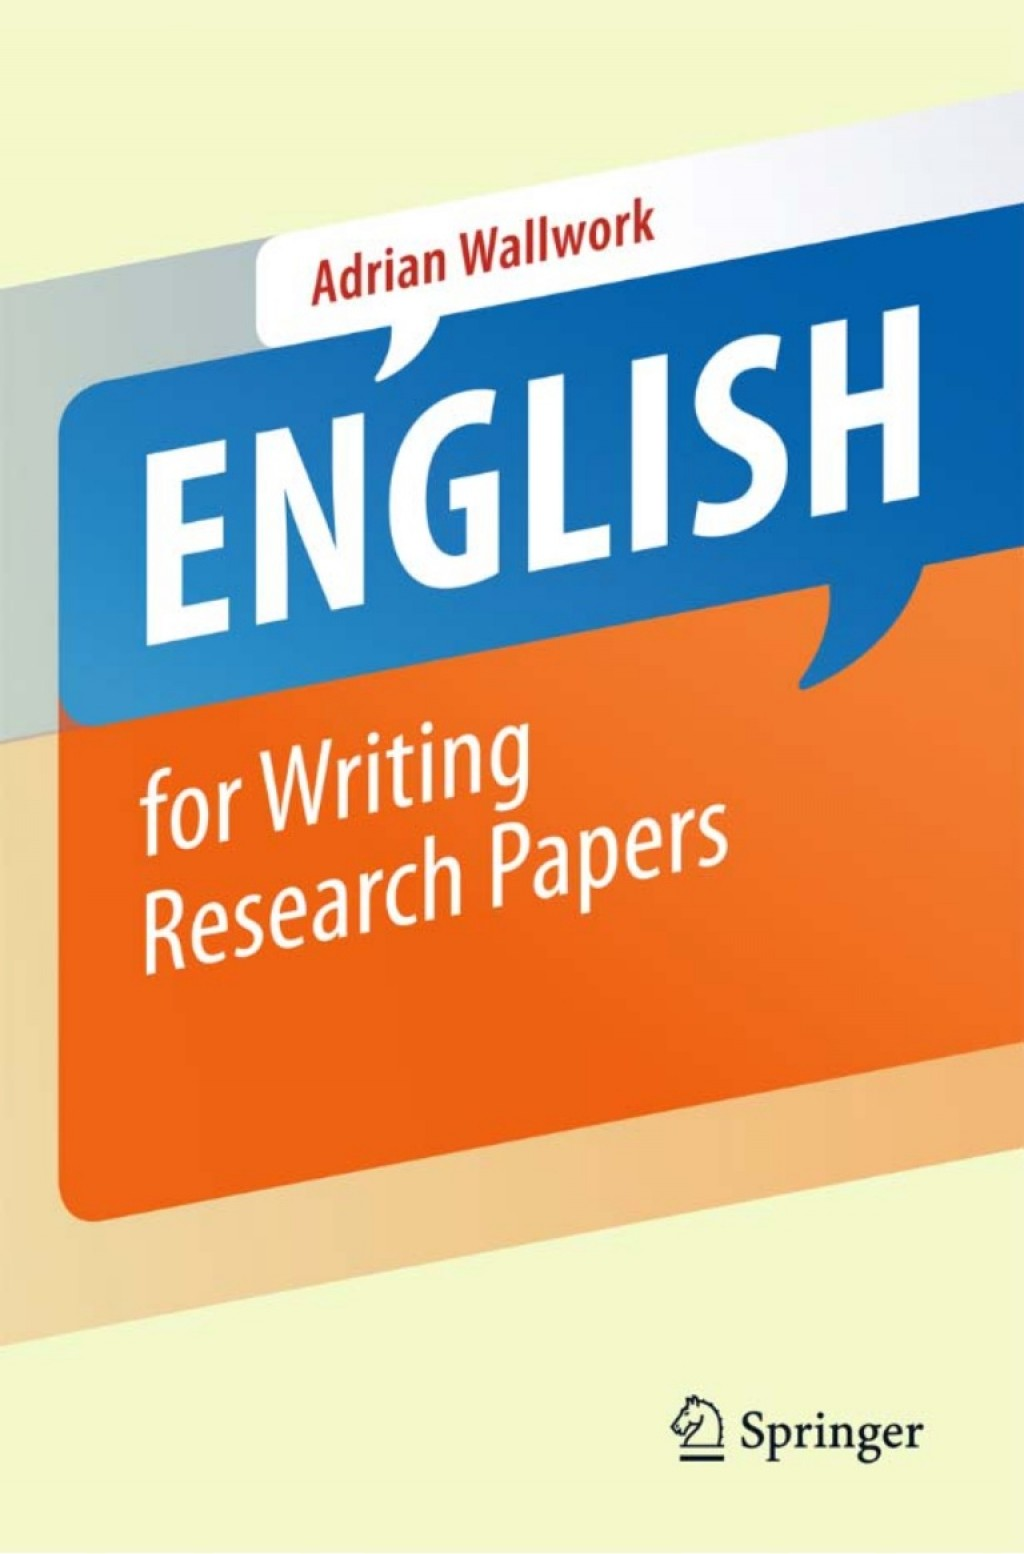 019 Englishforwritingresearchpapers Conversion Gate01 Thumbnail Writing Research Striking Paper Papers A Complete Guide Global Edition Pdf Lester 16th Free Large